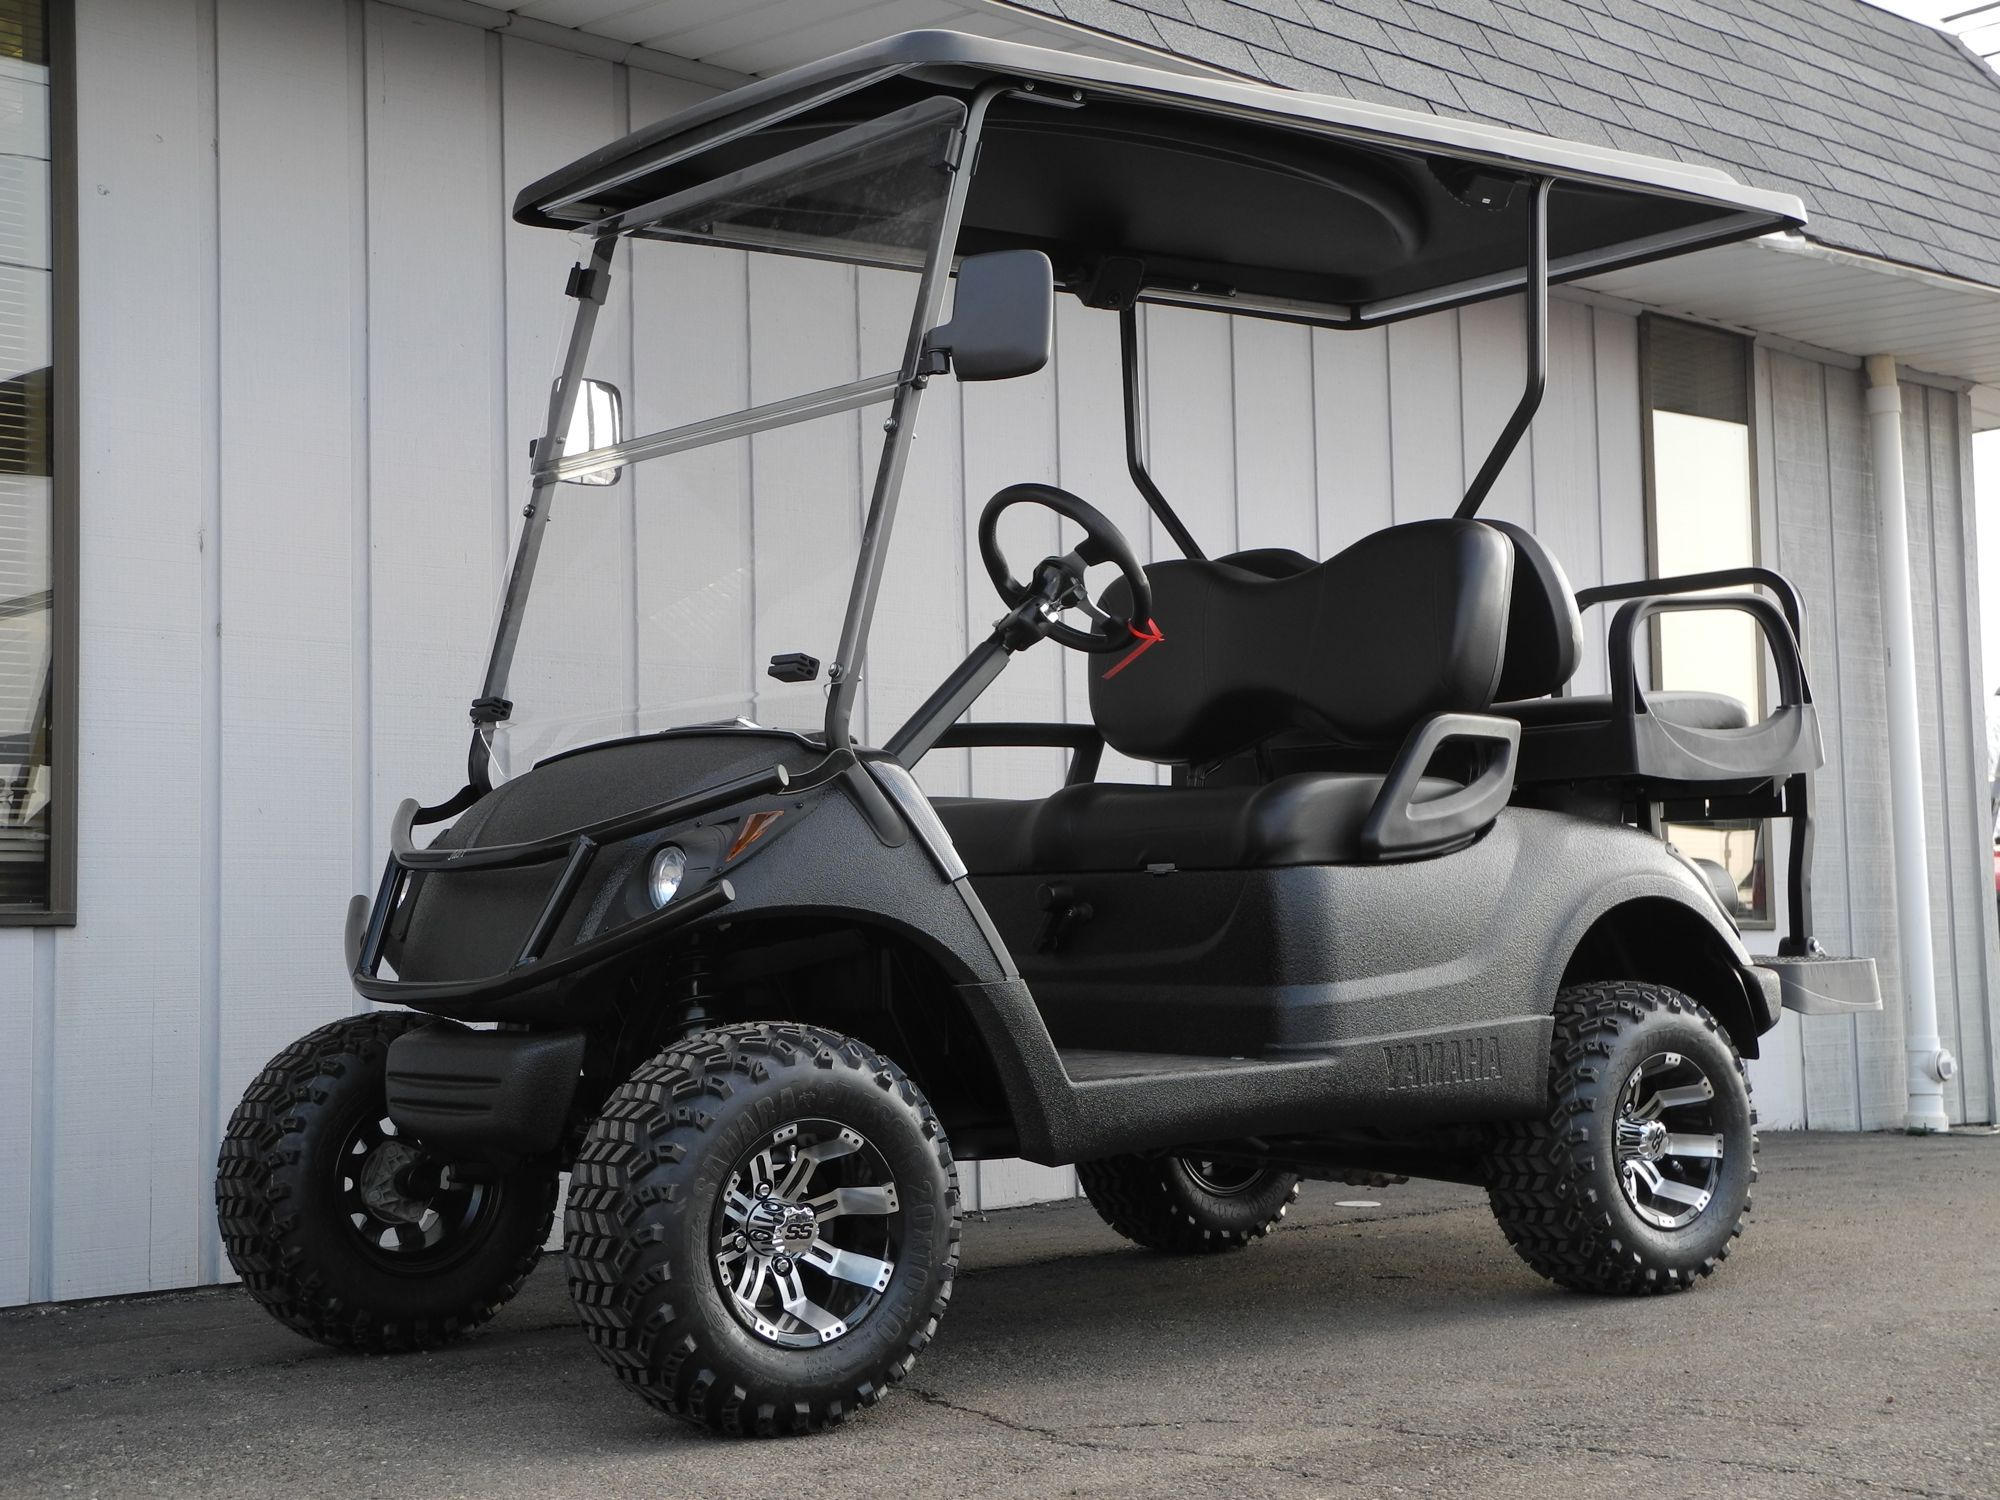 23 best golf cart images on pinterest golf carts music speakers golf carts golf cart parts can help customize your cart find out more at the image link solutioingenieria Images